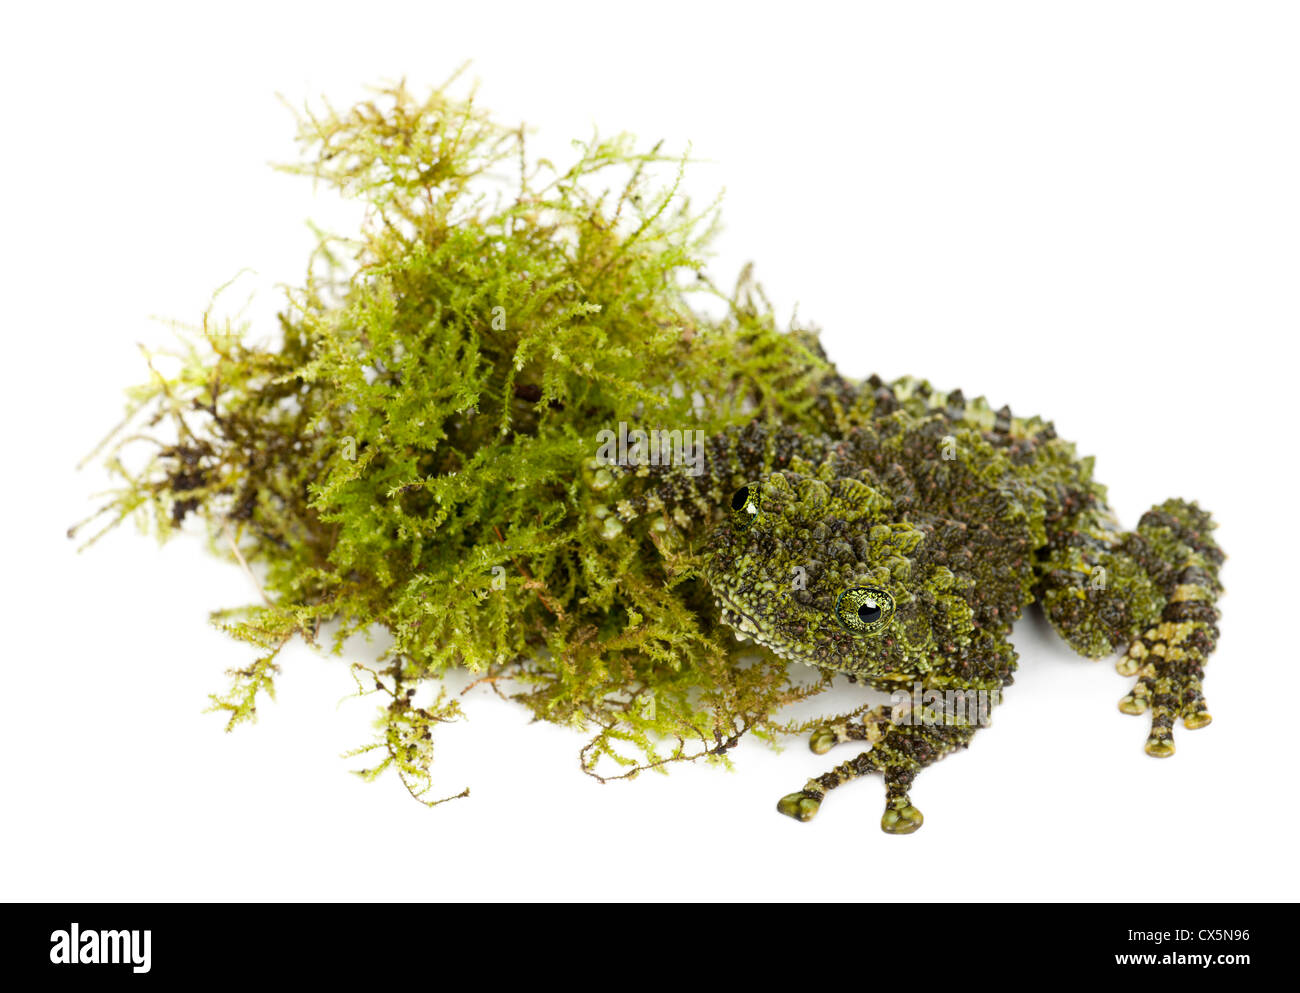 Mossy Frog, Theloderma corticale, also known as Vietnamese Mossy Frog or Tonkin Bug-eyed Frog, portrait against - Stock Image